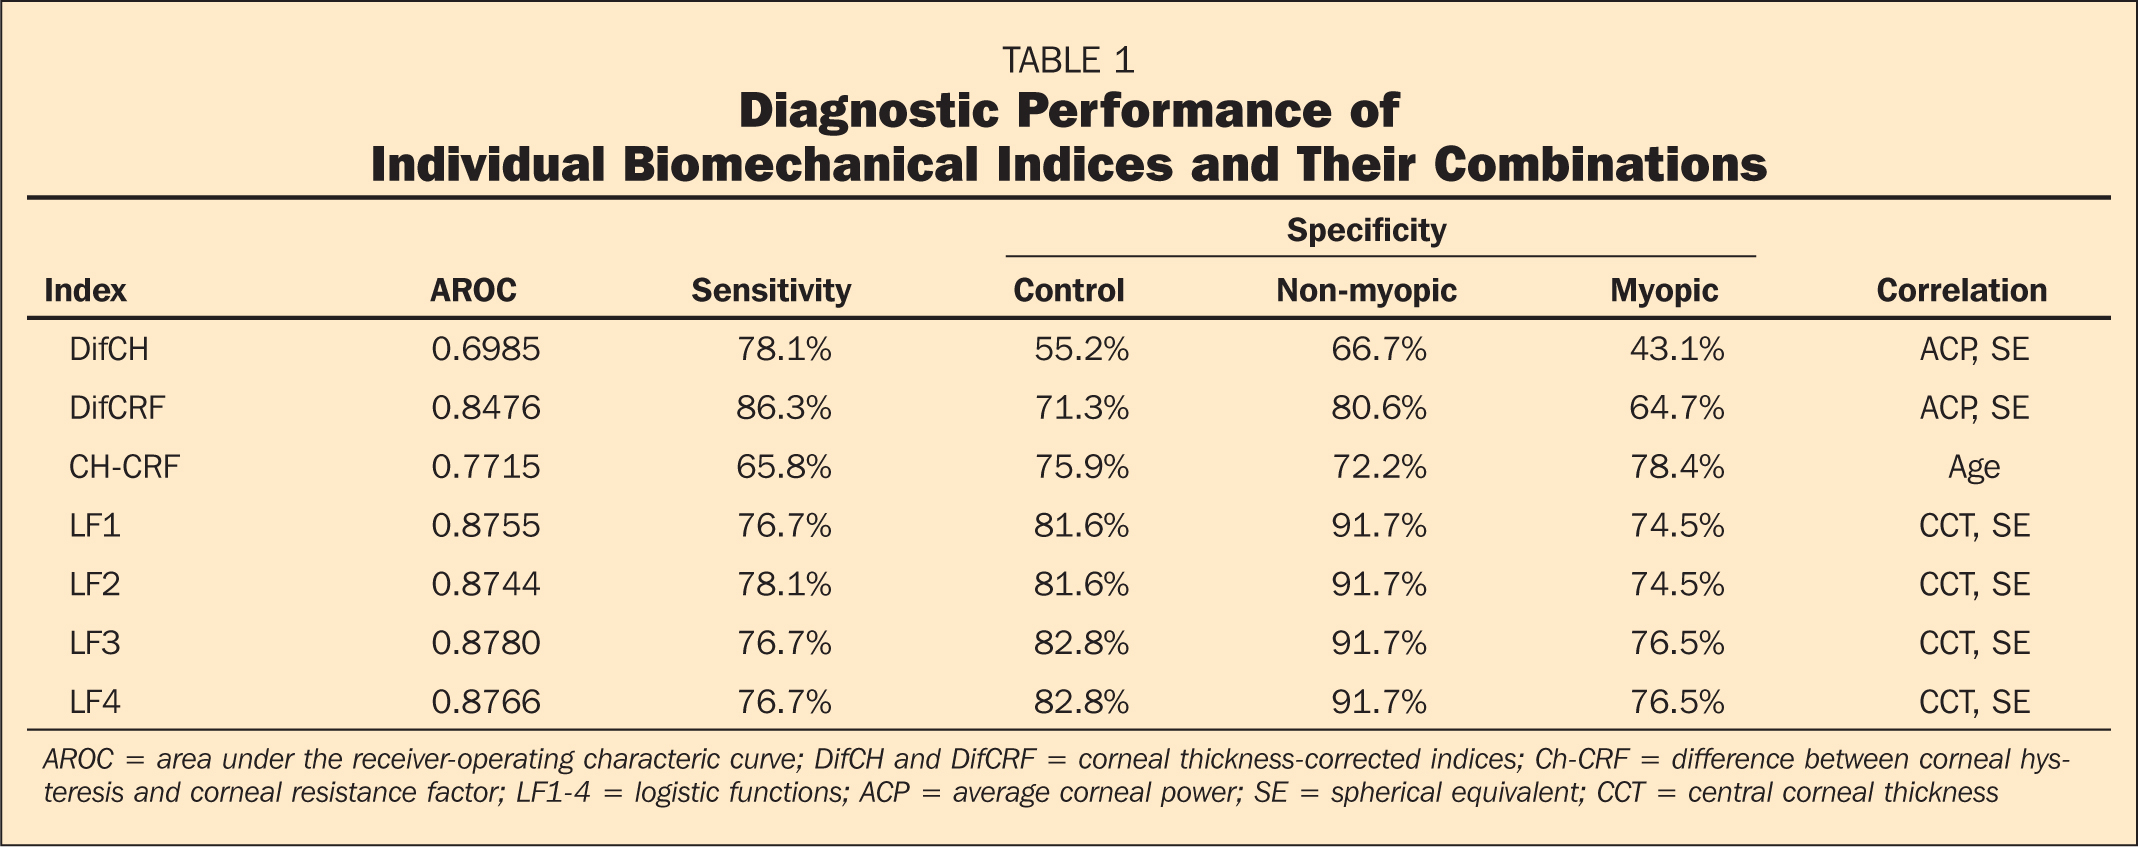 Diagnostic Performance of Individual Biomechanical Indices and Their Combinations